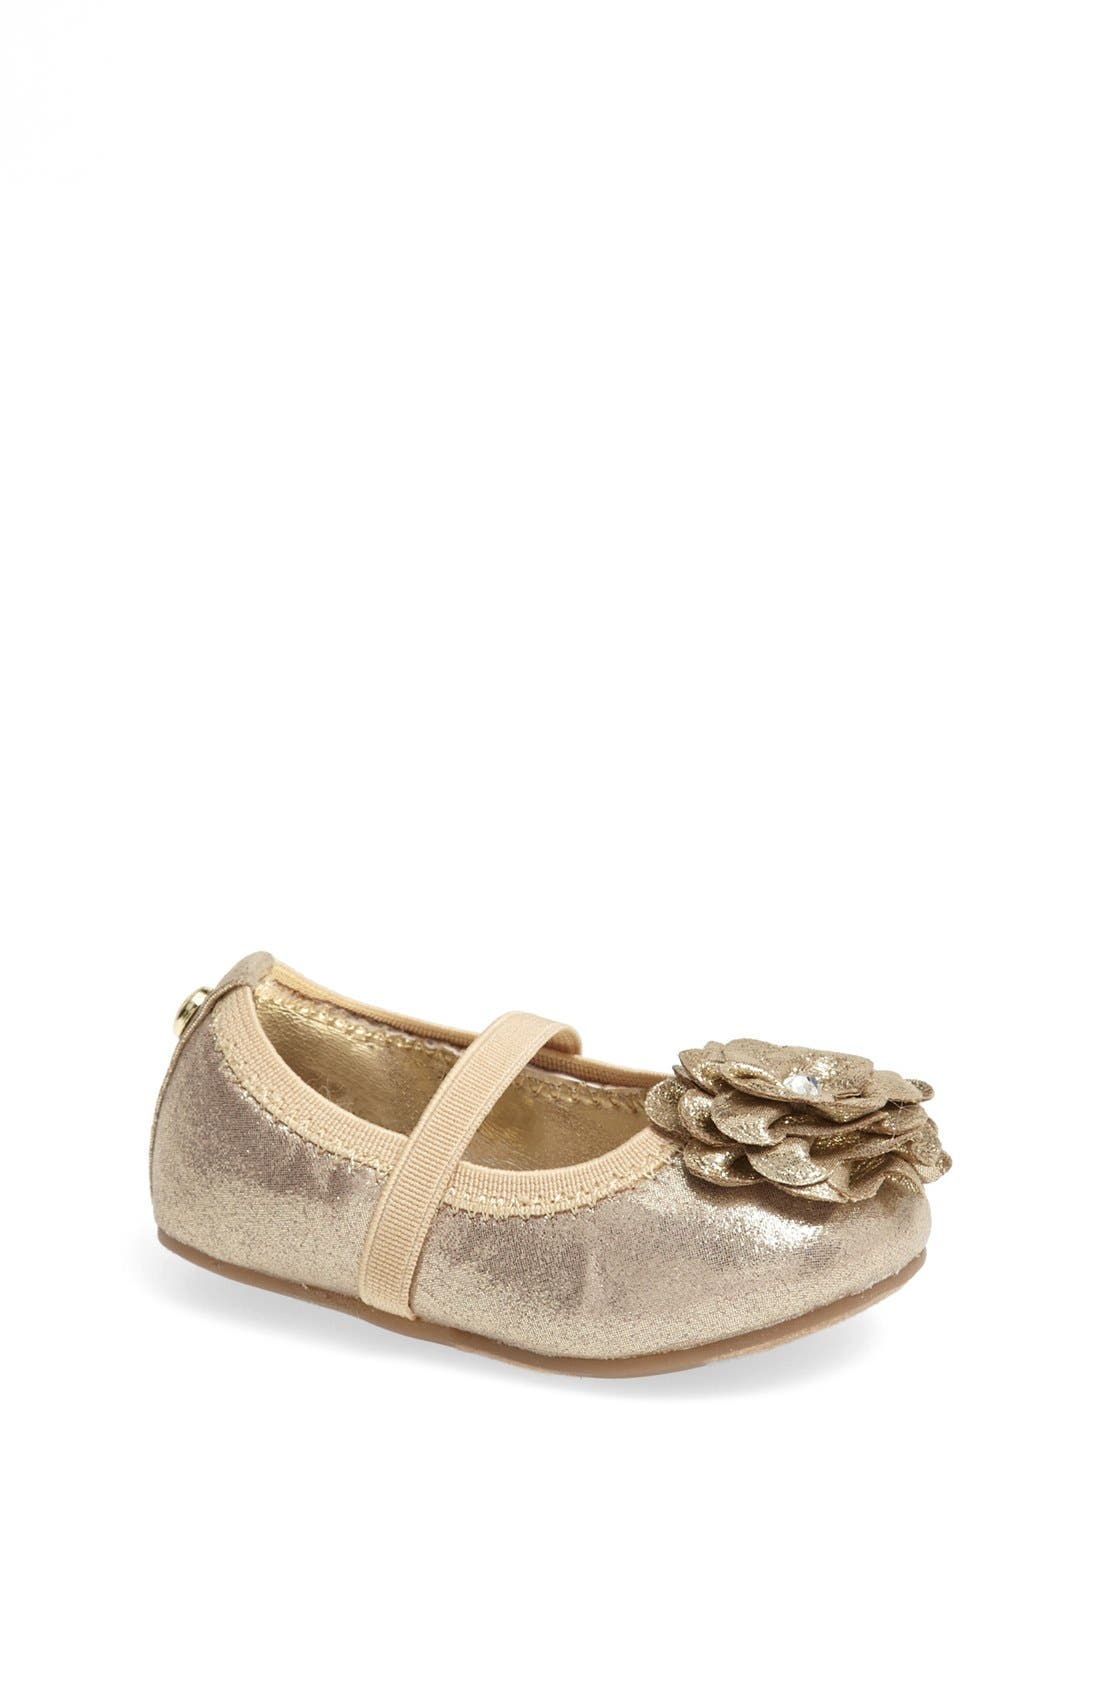 Alternate Image 1 Selected - Stuart Weitzman 'Pali' Crib Shoe (Baby)